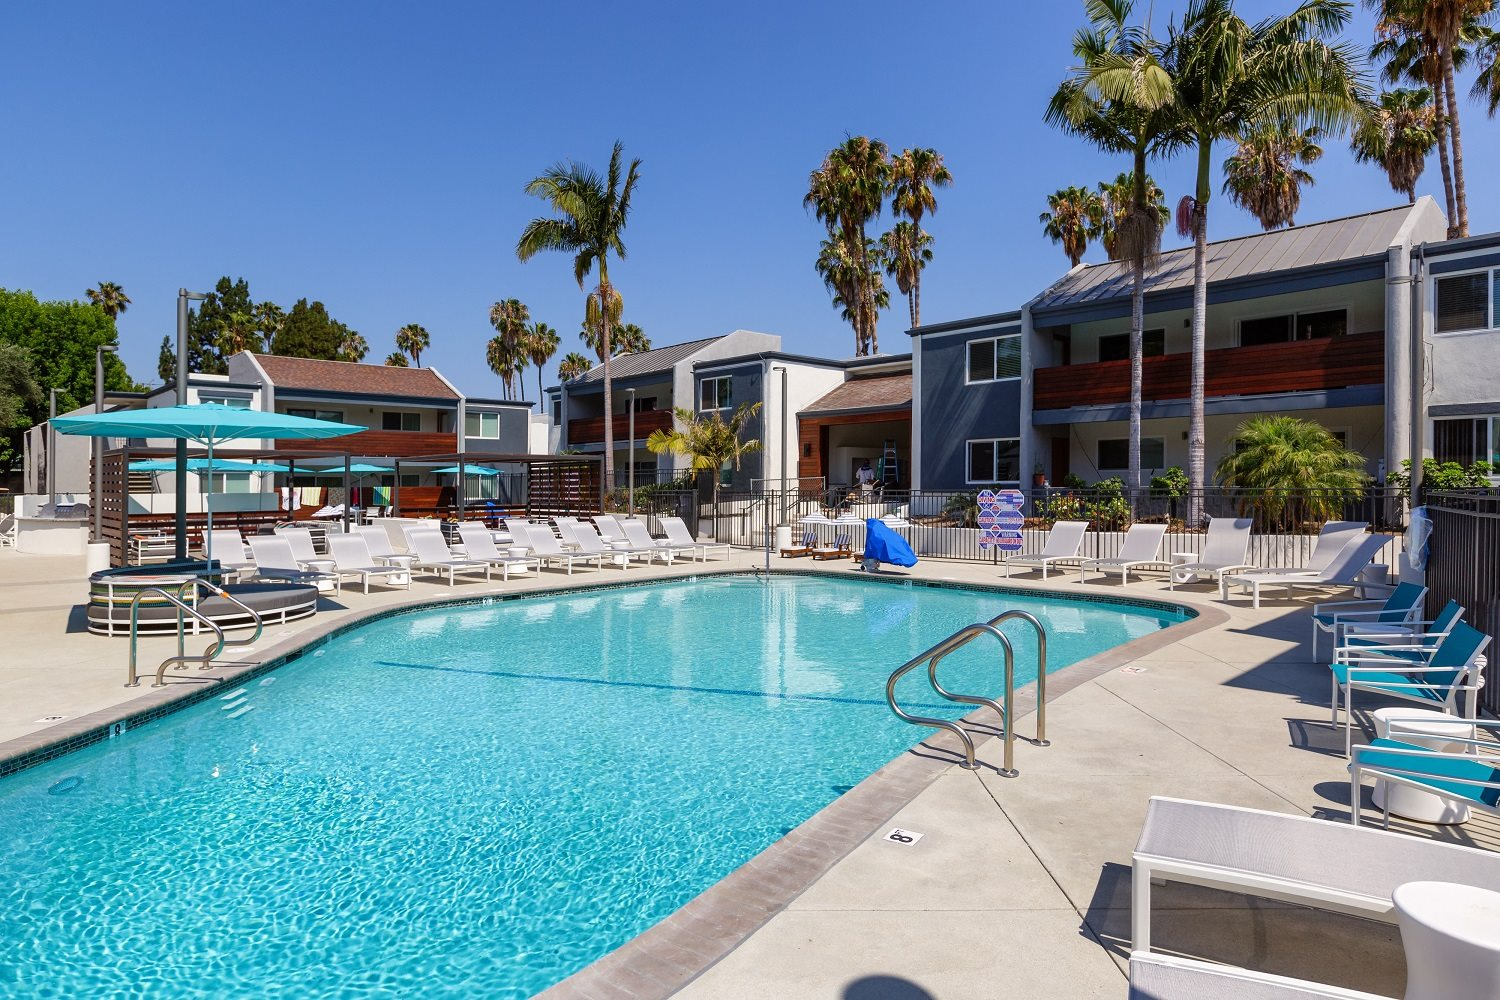 Top 7 Residences At Csu Long Beach Oneclass Blog